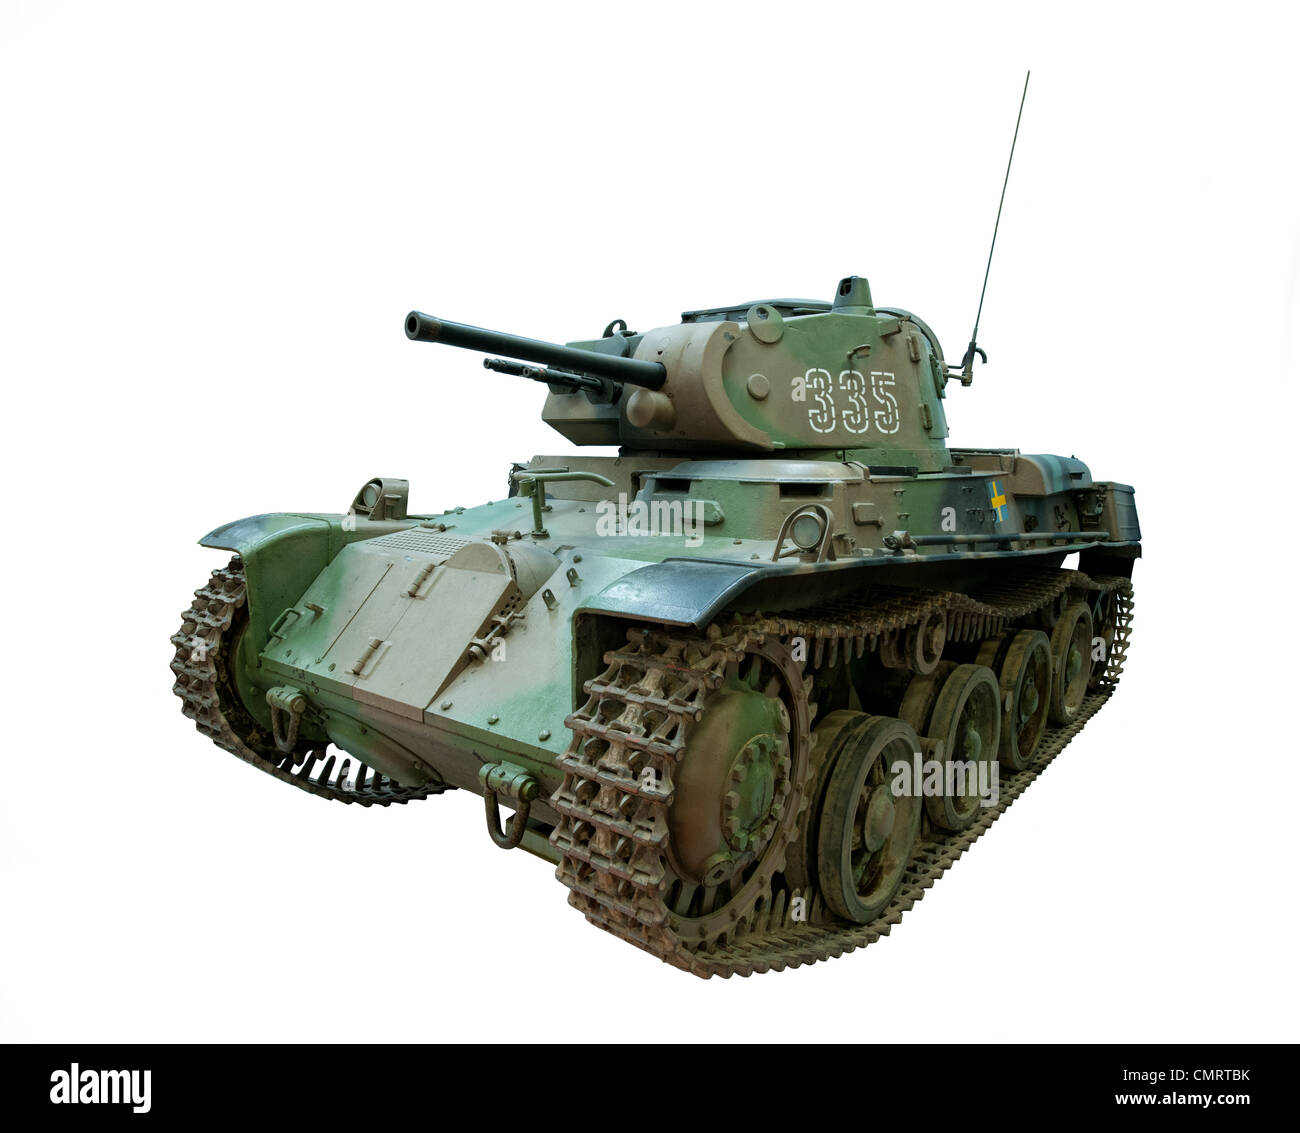 A cut out of a Stridsvagn M/40L Tank used by Swedish forces during WW2 - Stock Image